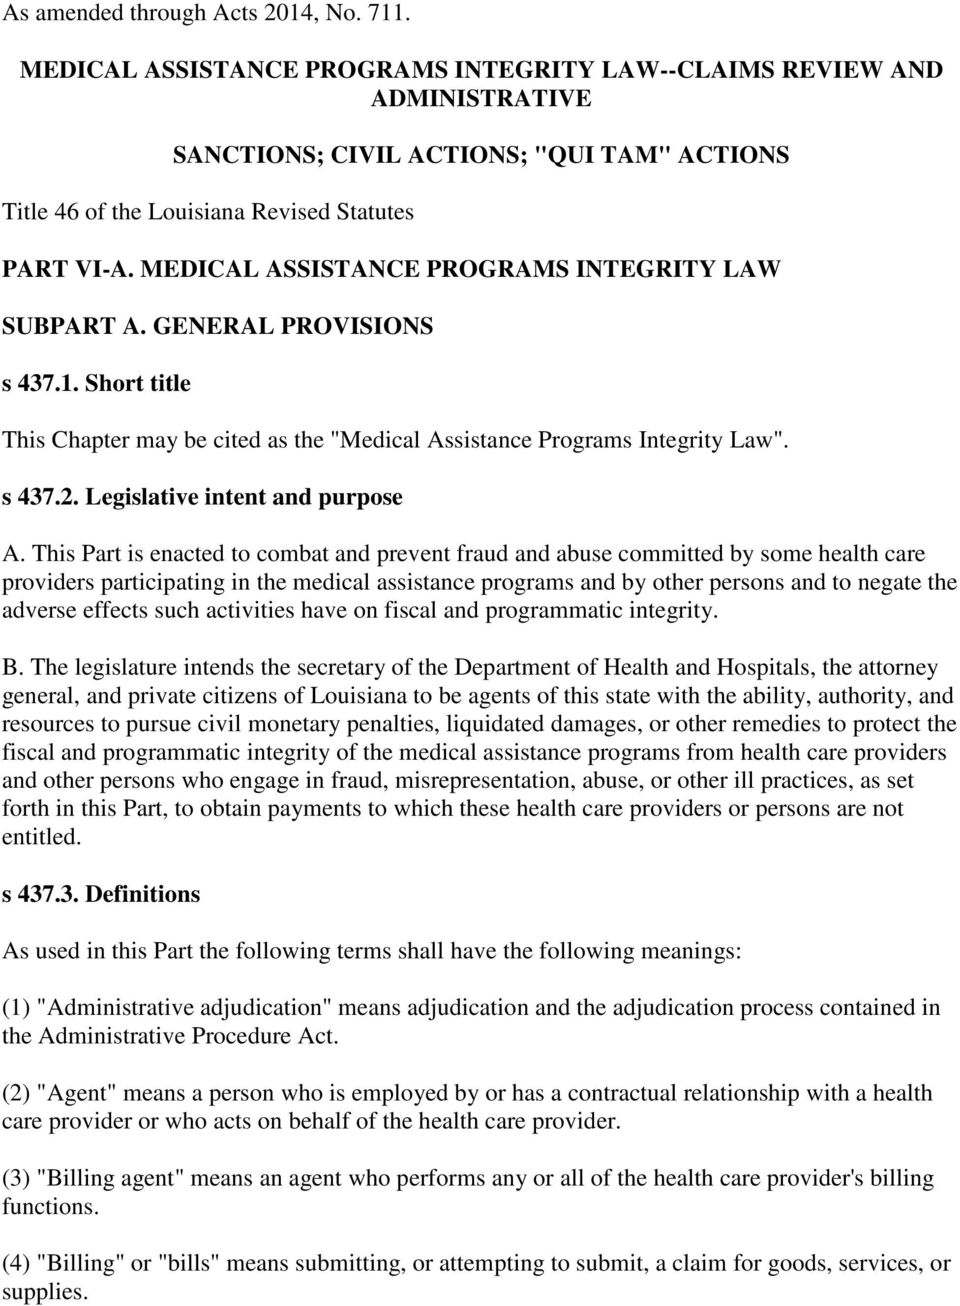 "MEDICAL ASSISTANCE PROGRAMS INTEGRITY LAW SUBPART A. GENERAL PROVISIONS s 437.1. Short title This Chapter may be cited as the ""Medical Assistance Programs Integrity Law"". s 437.2."